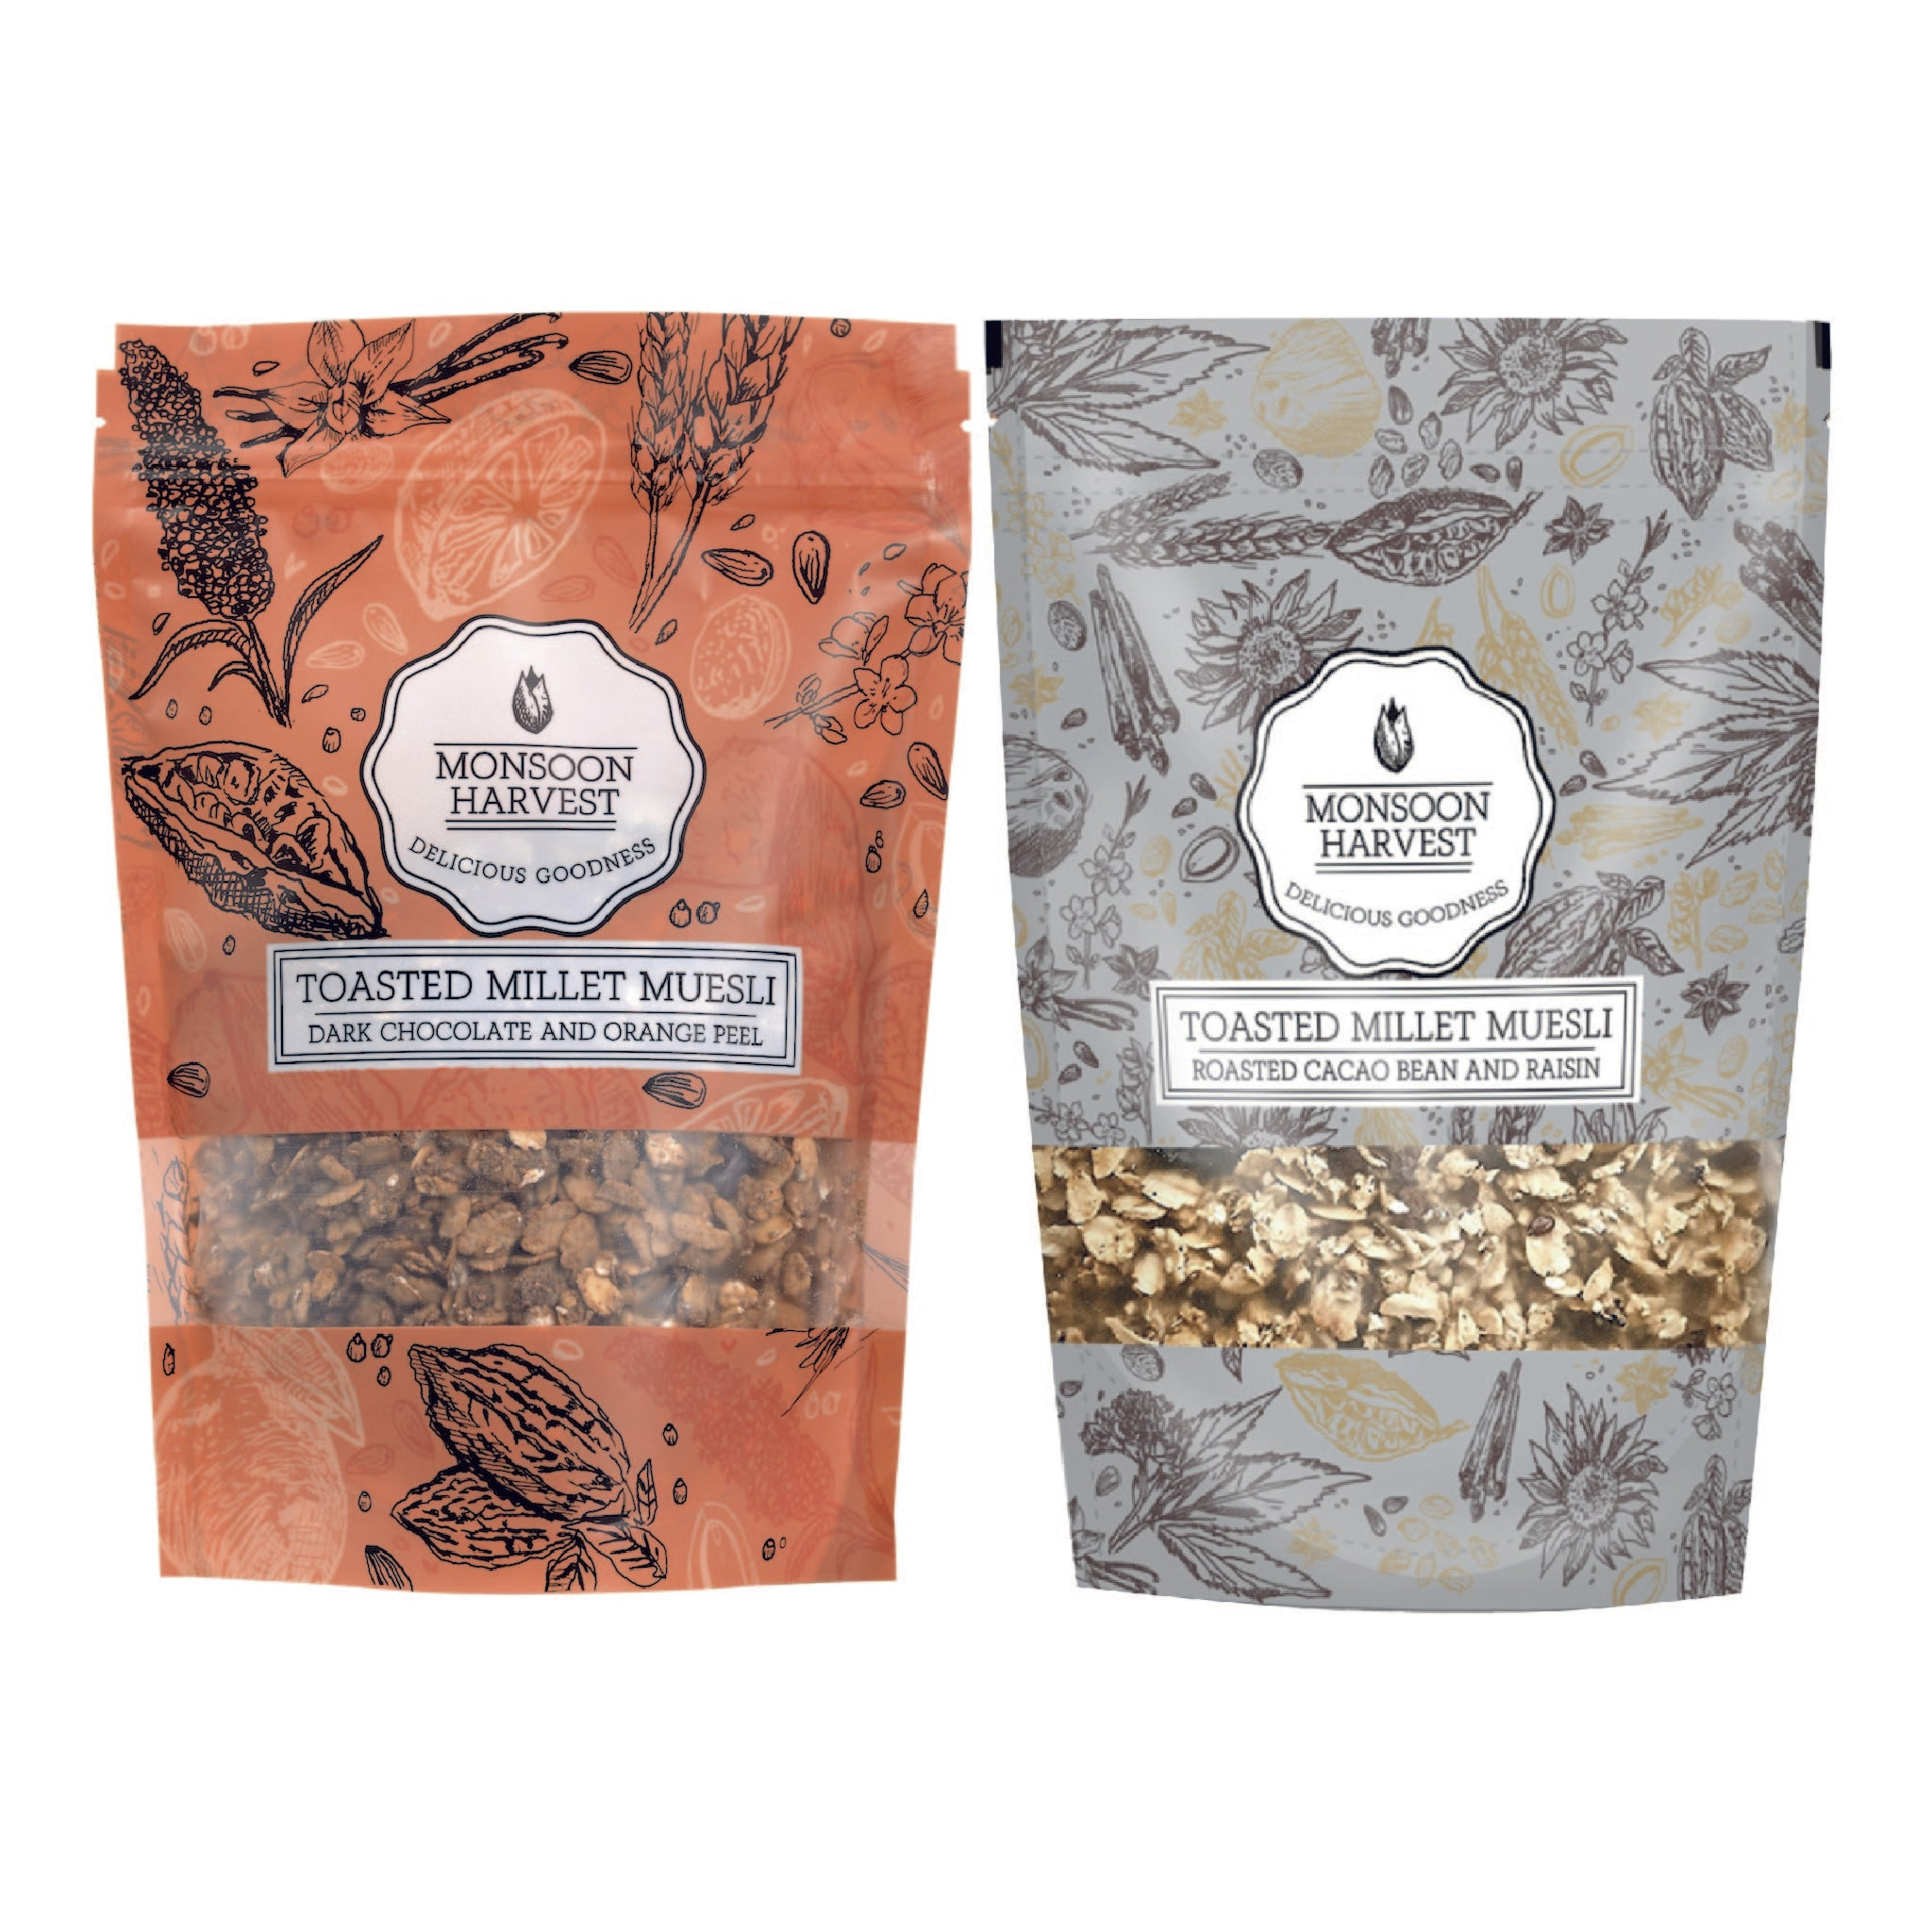 Toasted Millet Muesli - Chocoholics Variety Pack 2 x 250 g